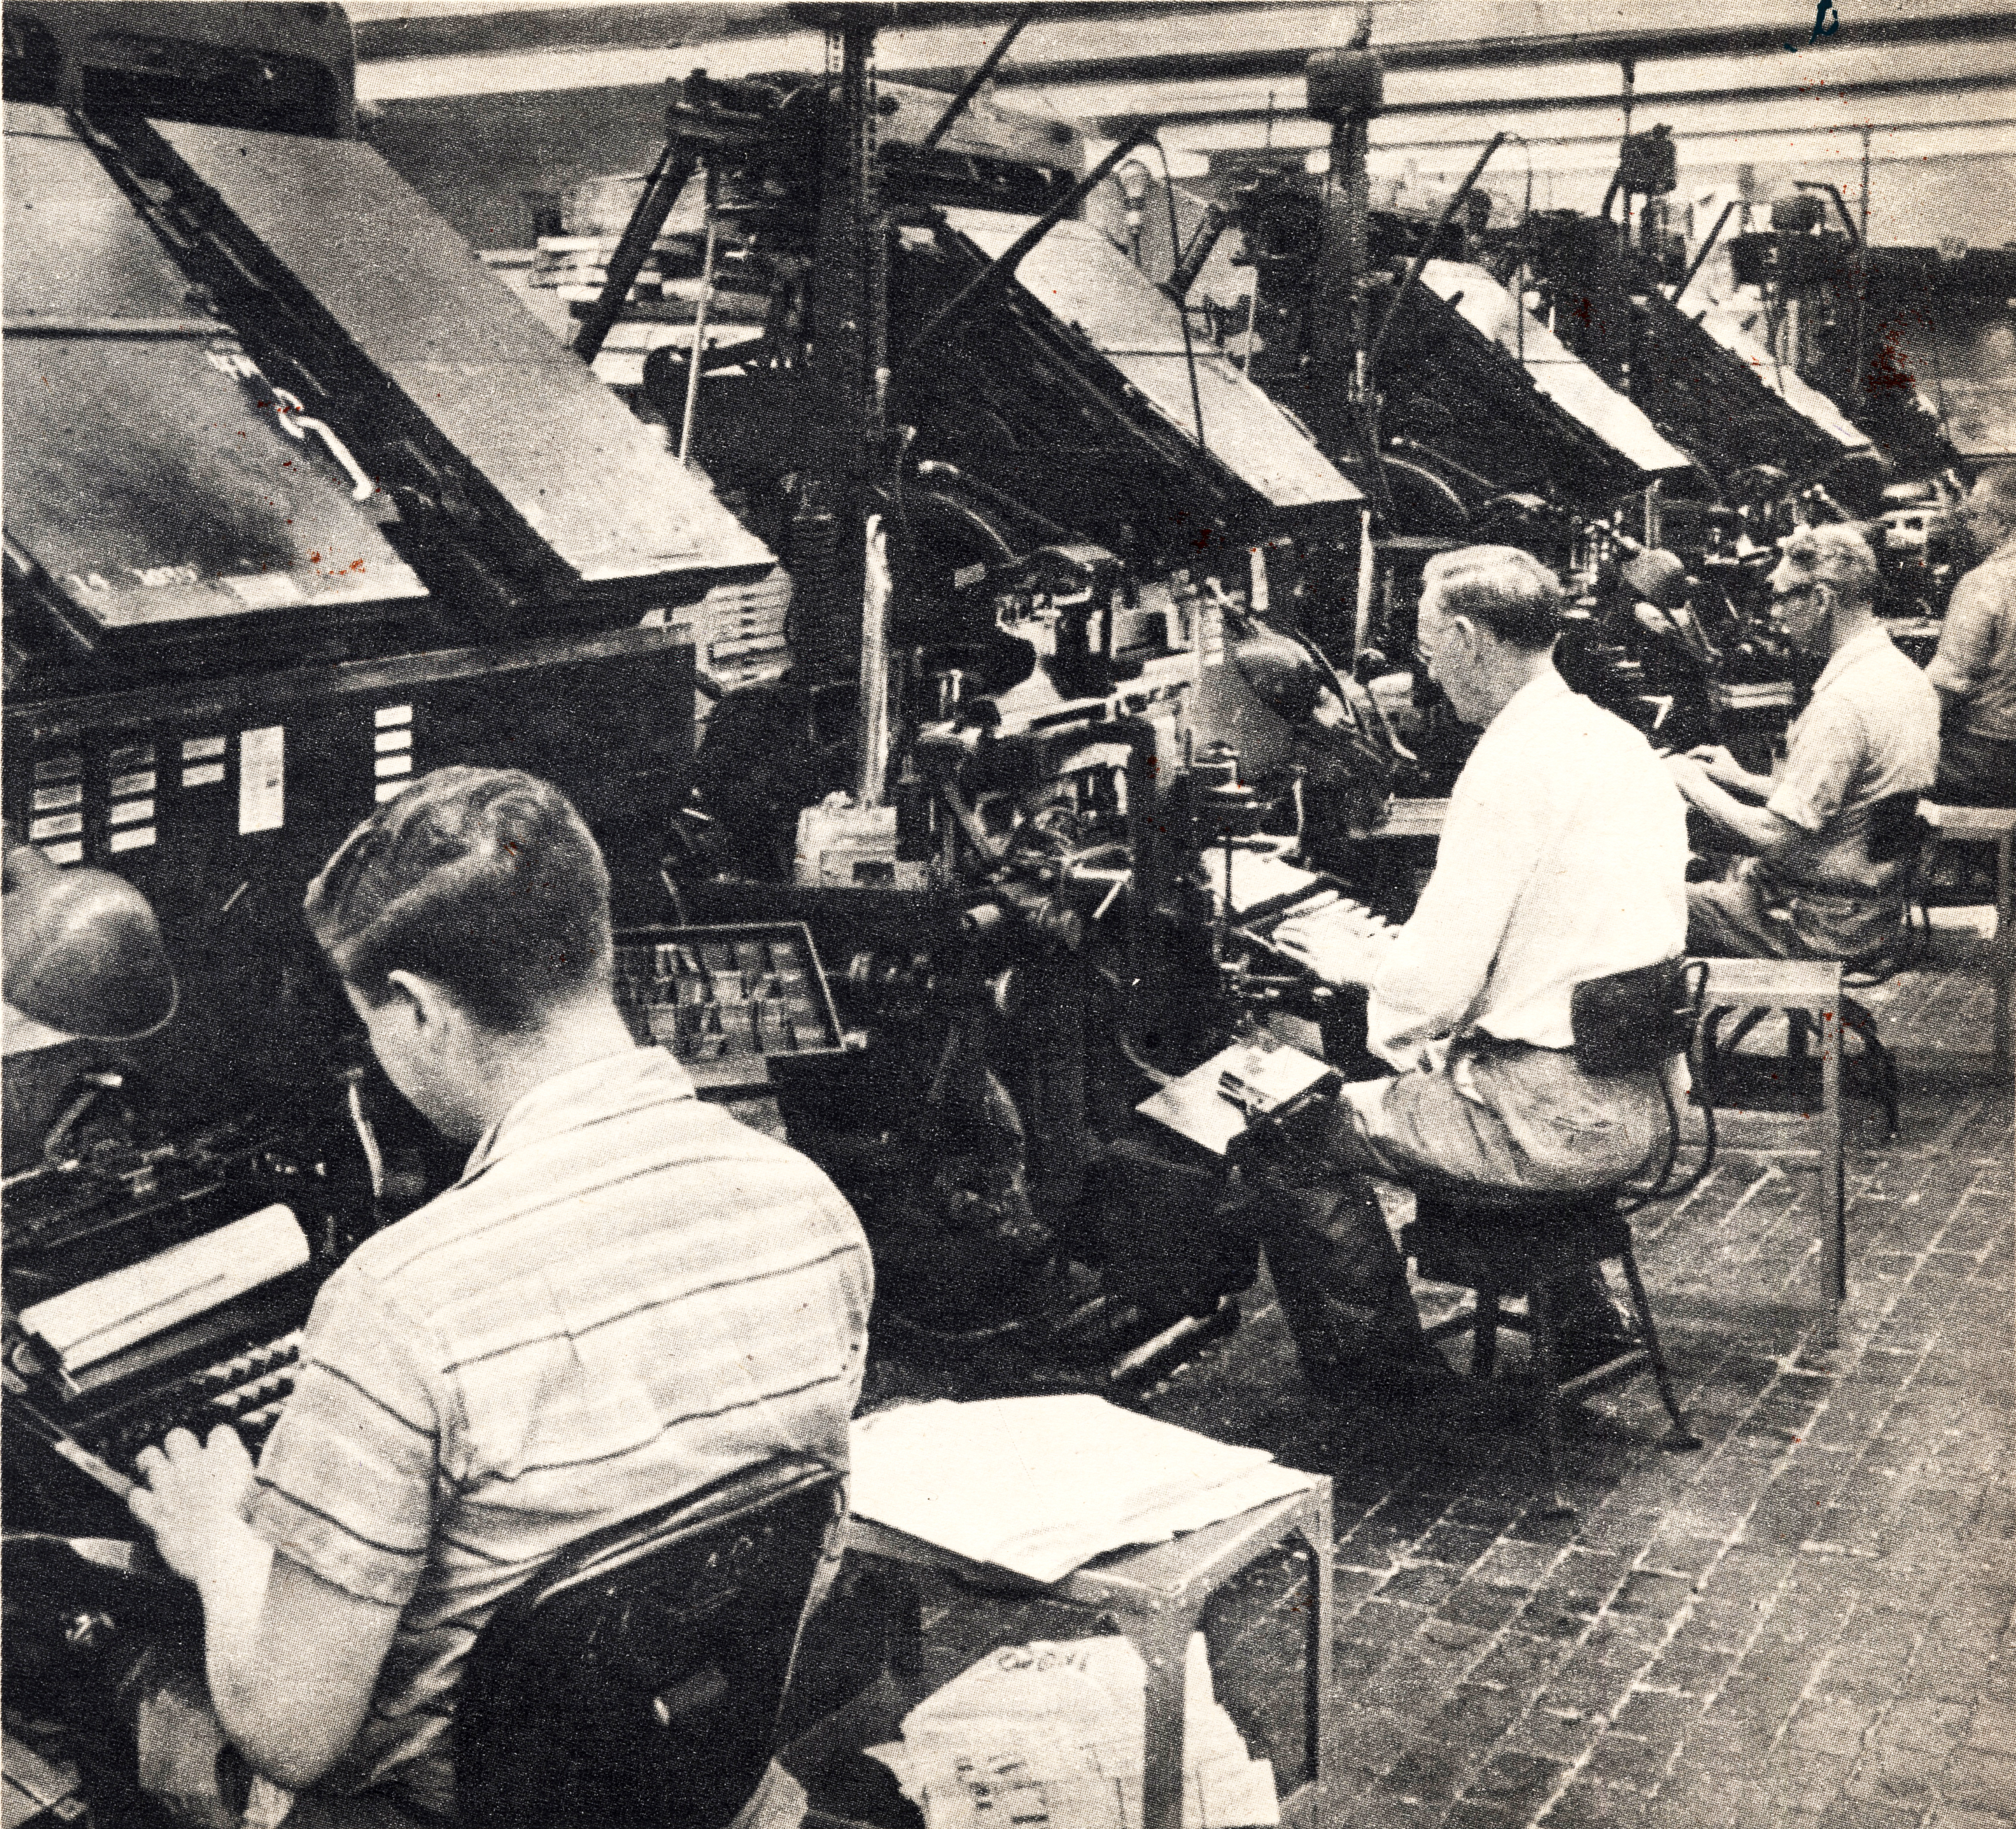 Linotype Operators In The Composing Room At The Cincinnati Enquirer 1941 Image Courtsey Of The Cincinnati Enquirer